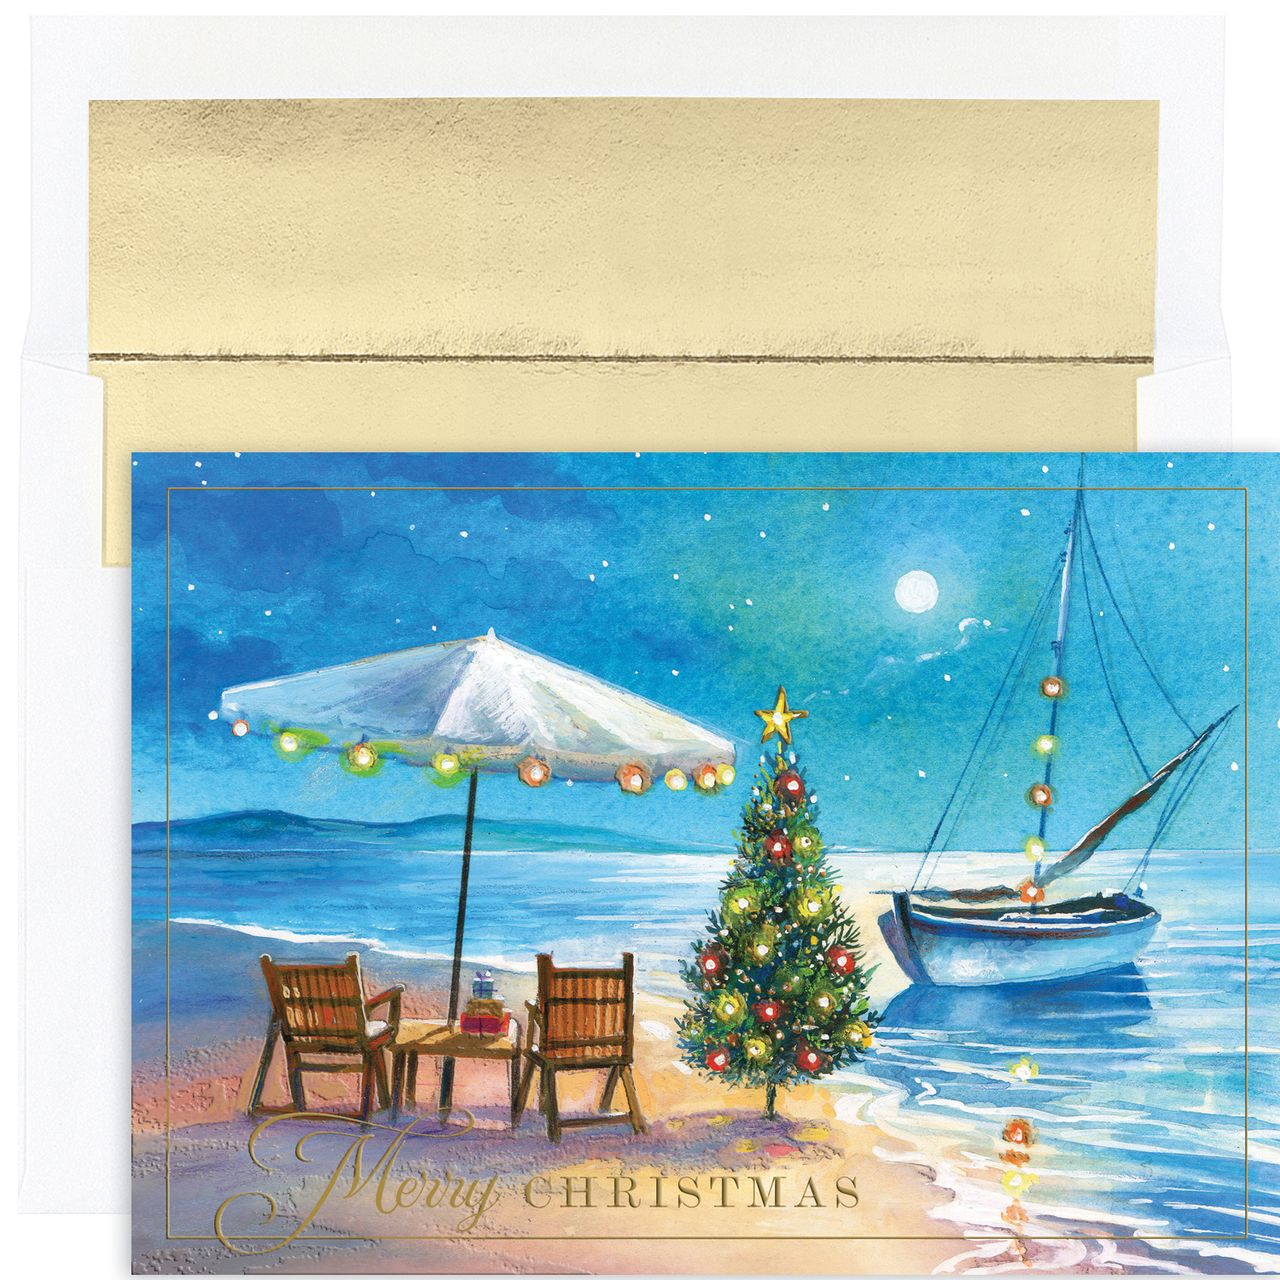 Shoreline greetings christmas card beach christmas cards beach masterpiece shoreline greetings set of 18 boxed greeting cards with envelopes holiday lane for the home macys kristyandbryce Gallery